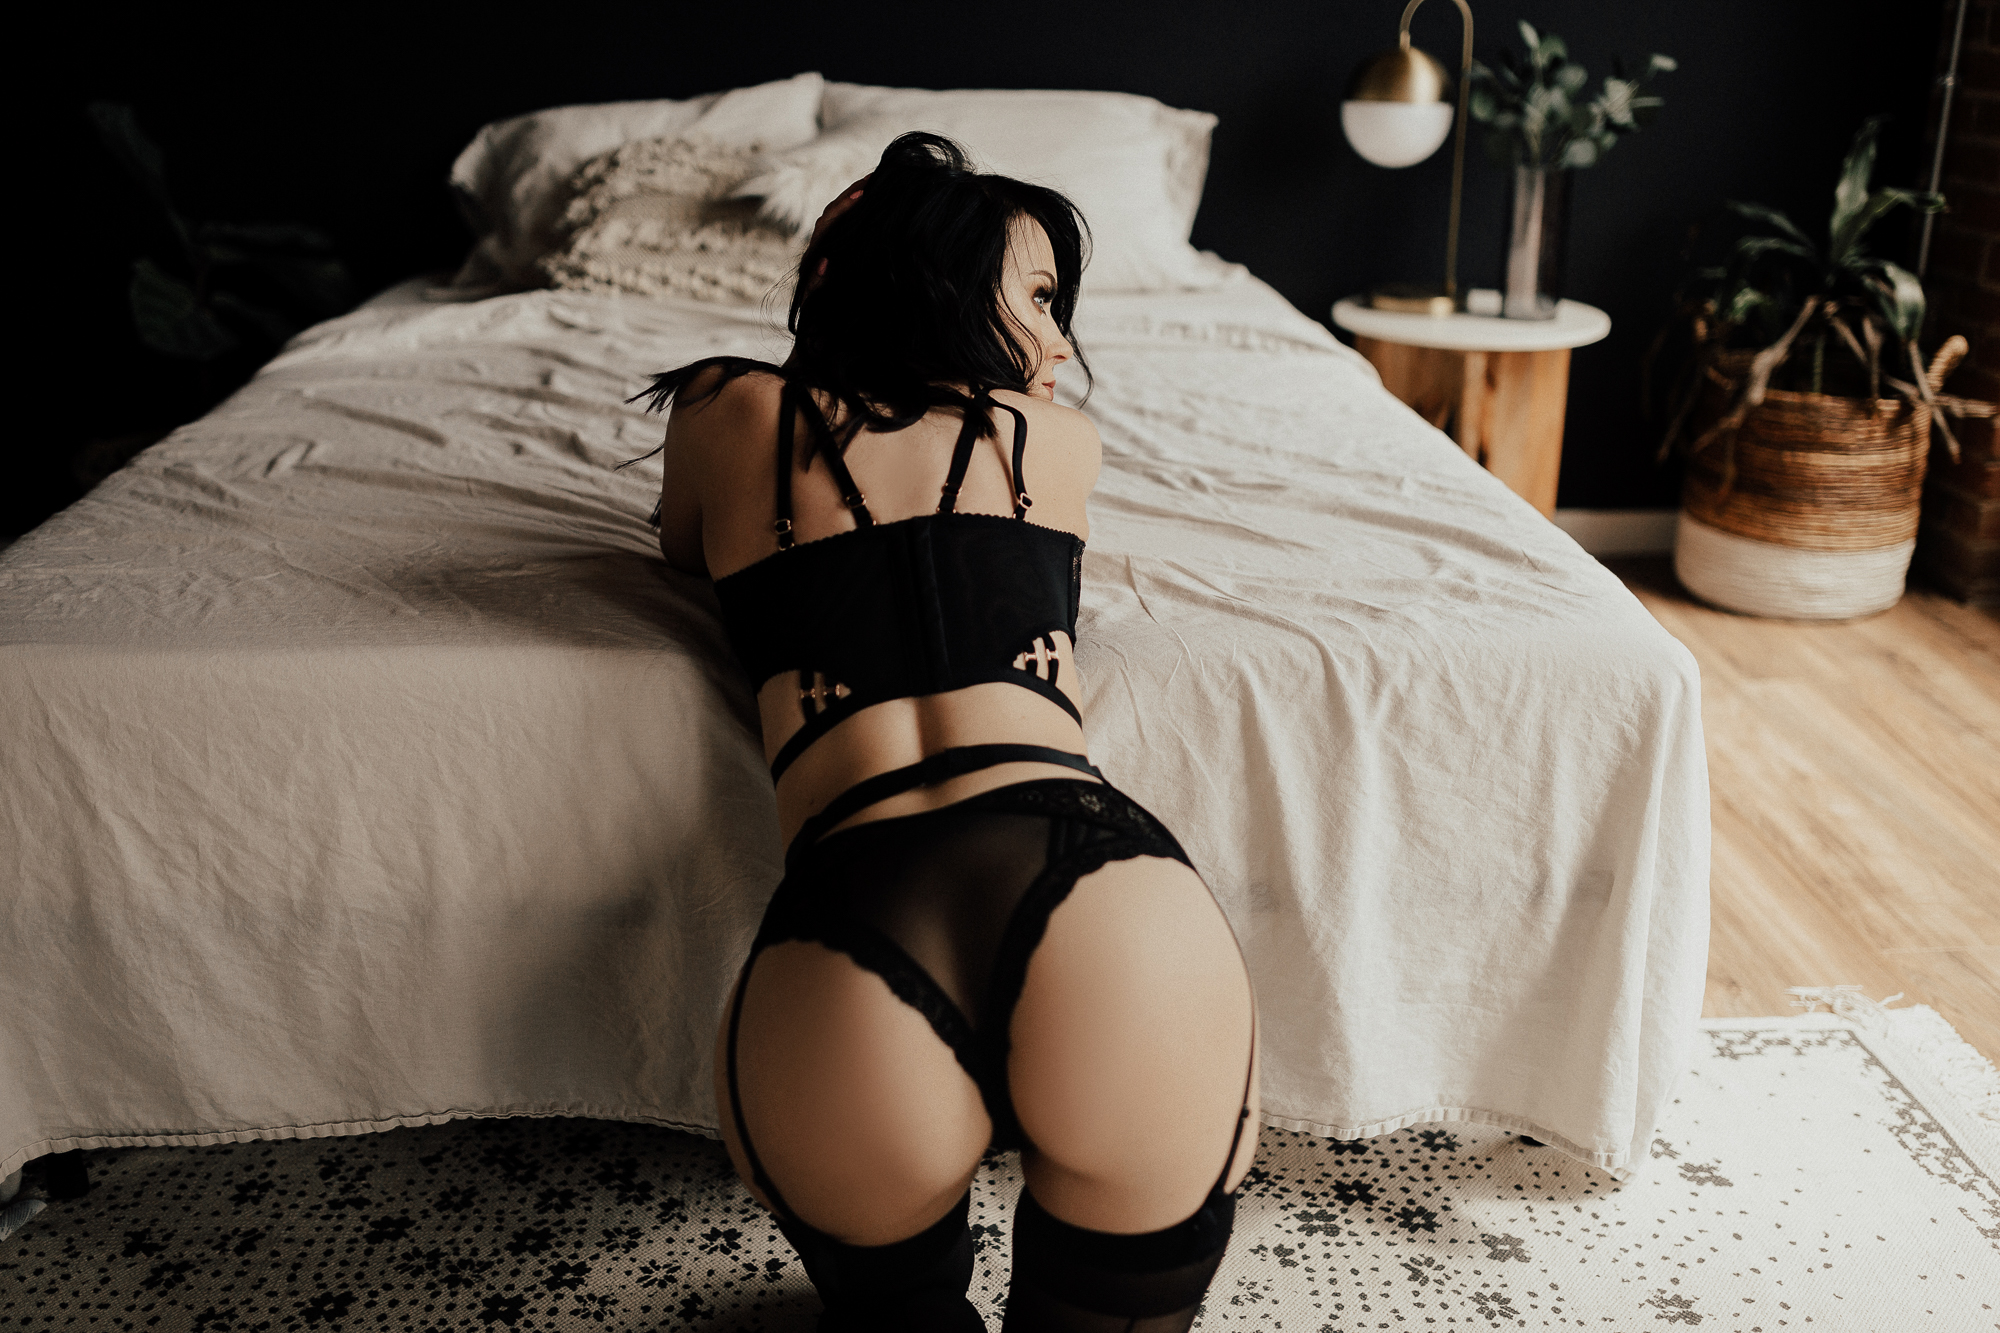 MF_Kansas_City_Boudoir_115.jpg